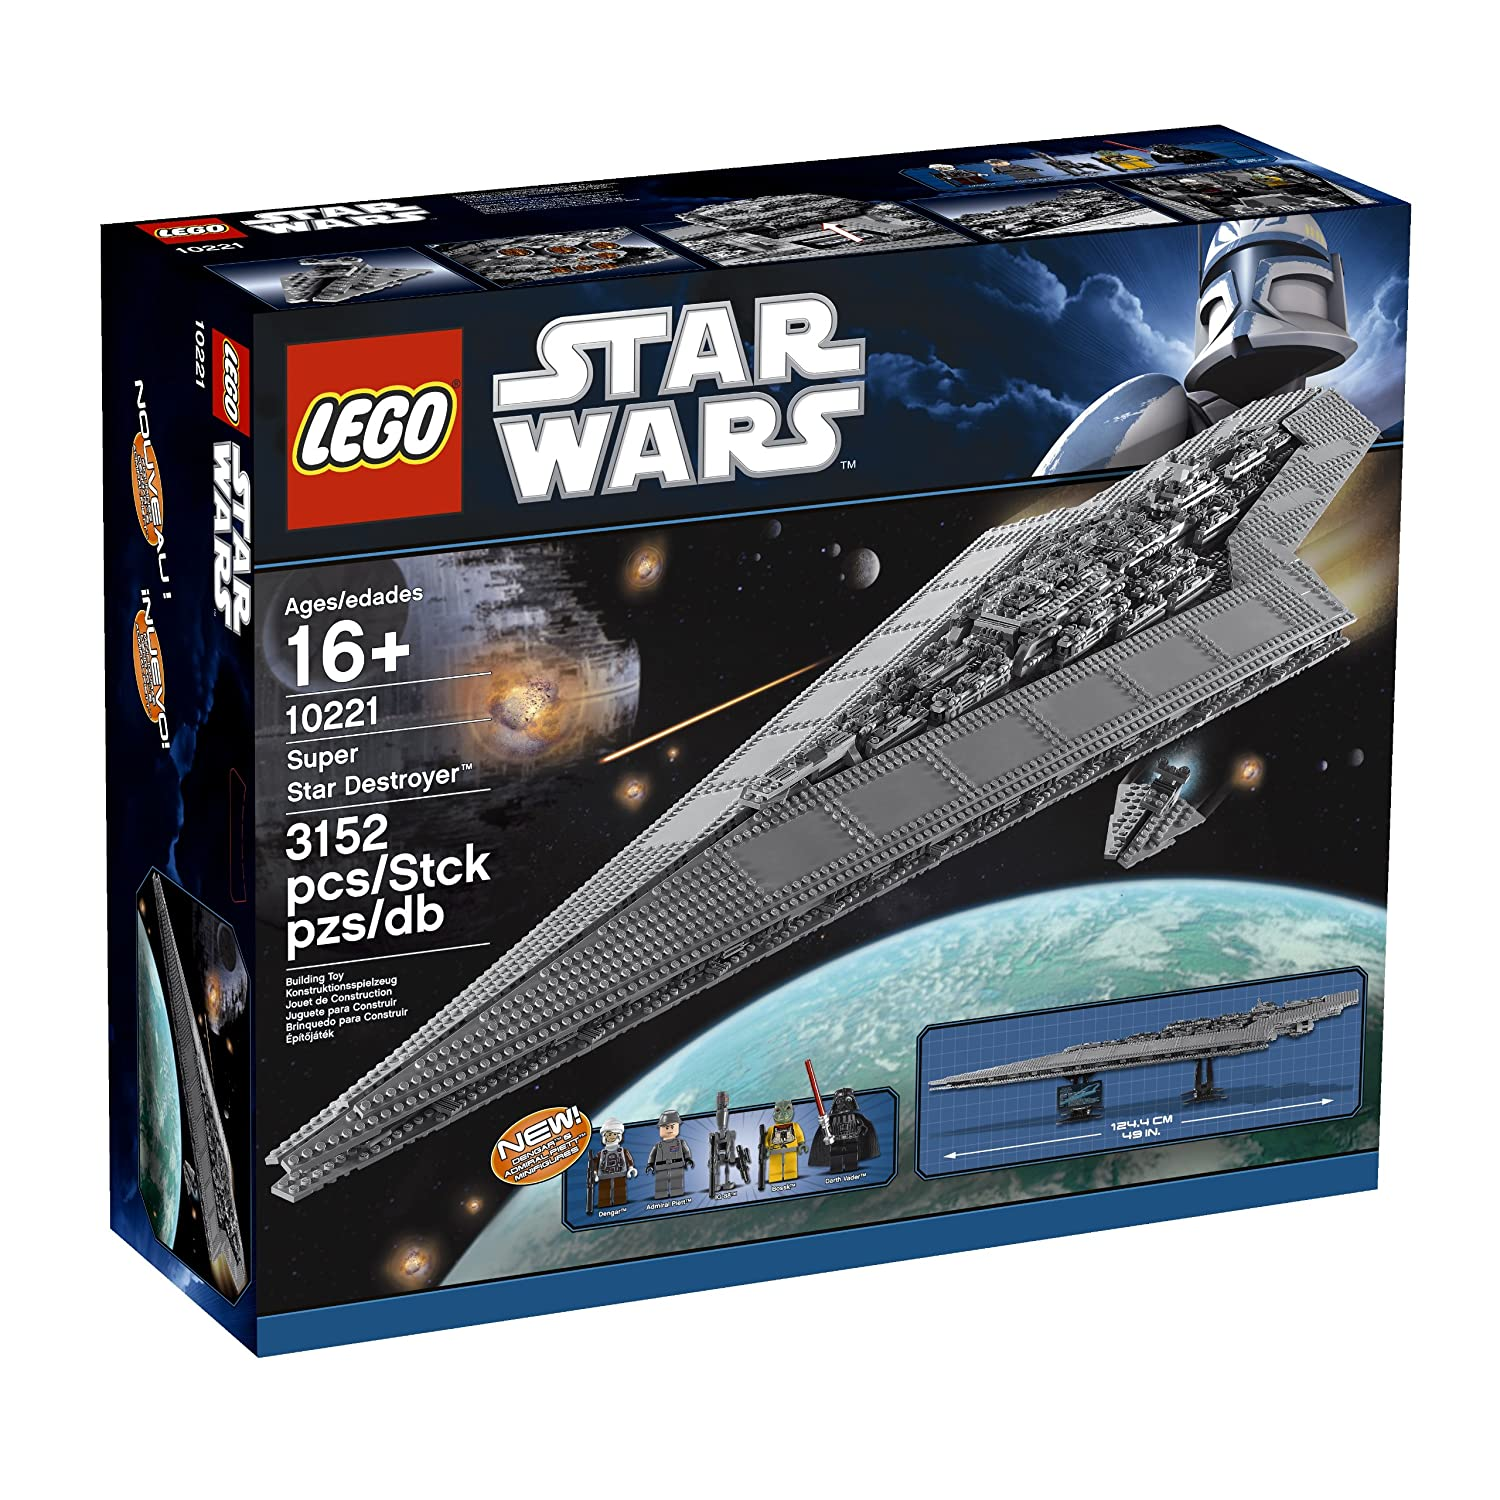 LEGO Star Wars - 10221 - Jeu de Construction